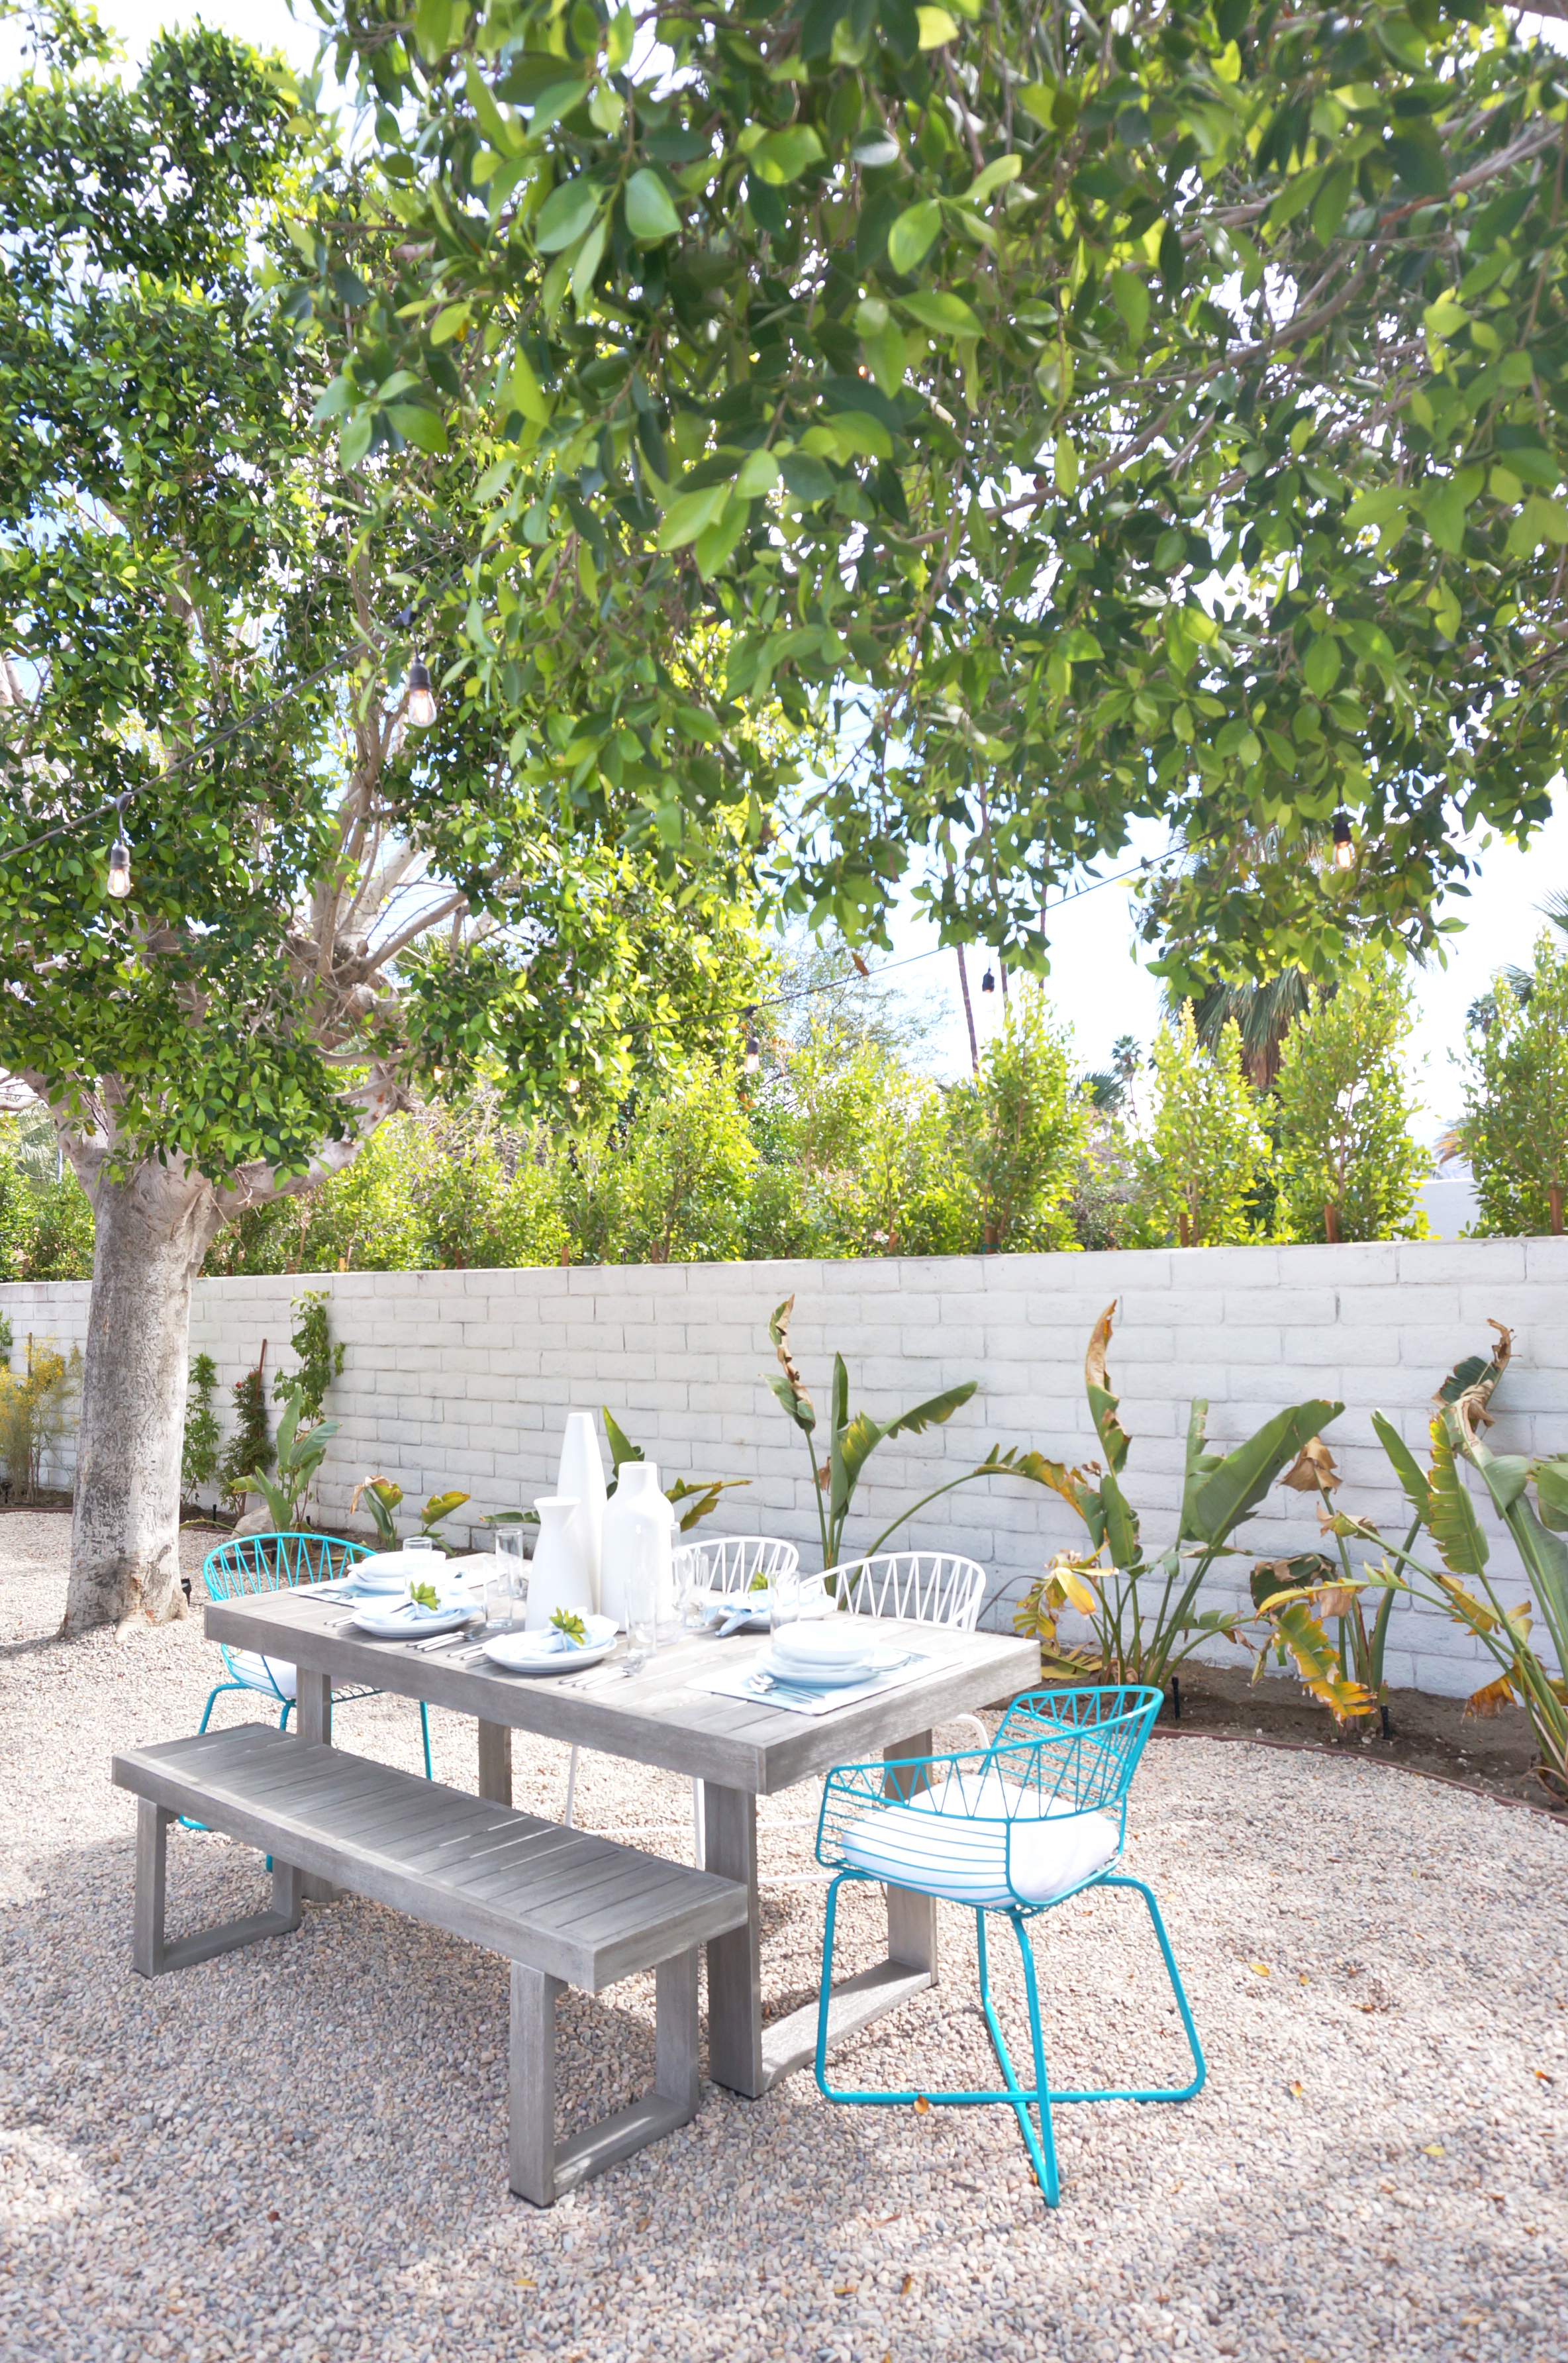 a sweet garden scene at the West Elm Pool House